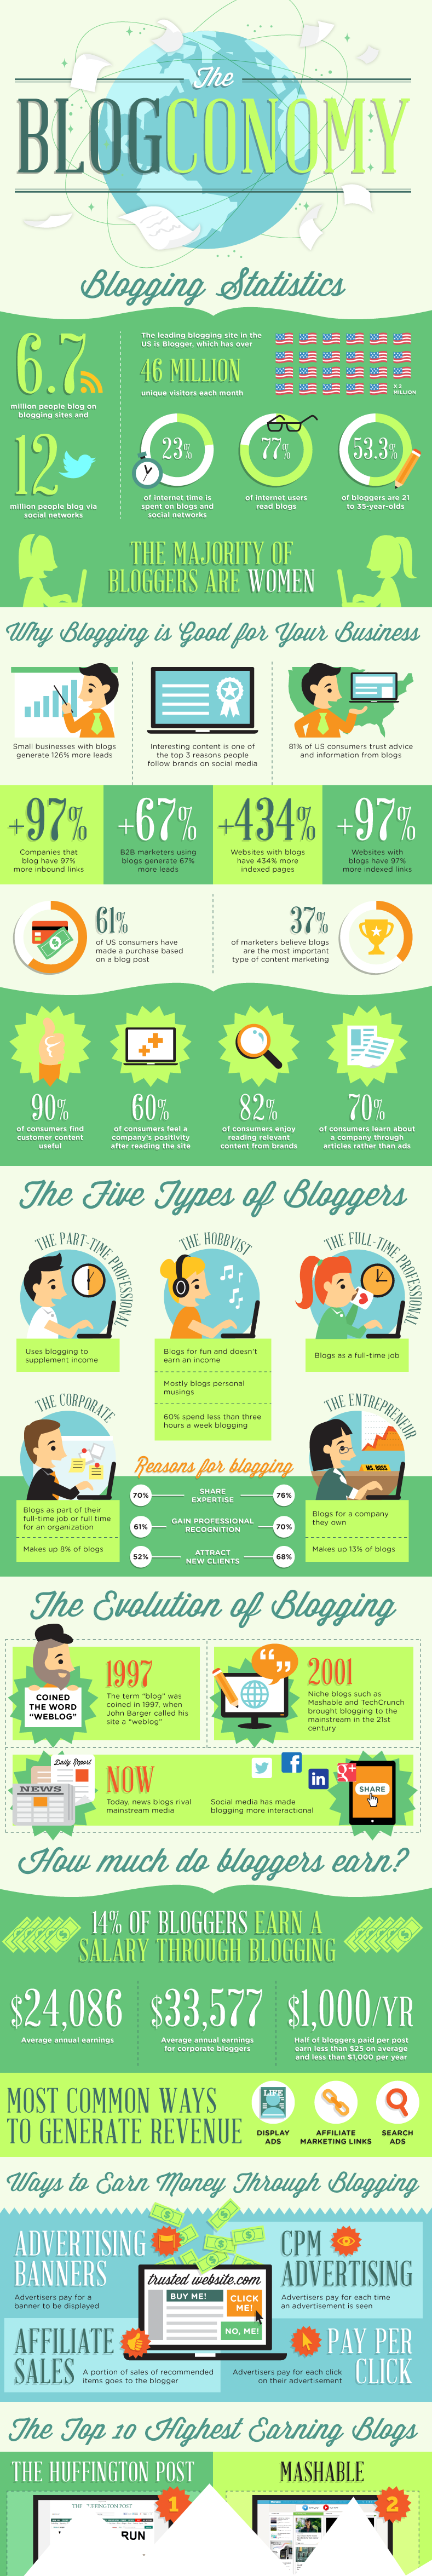 The Blogconomy - infographic courtesy of Ignitespot